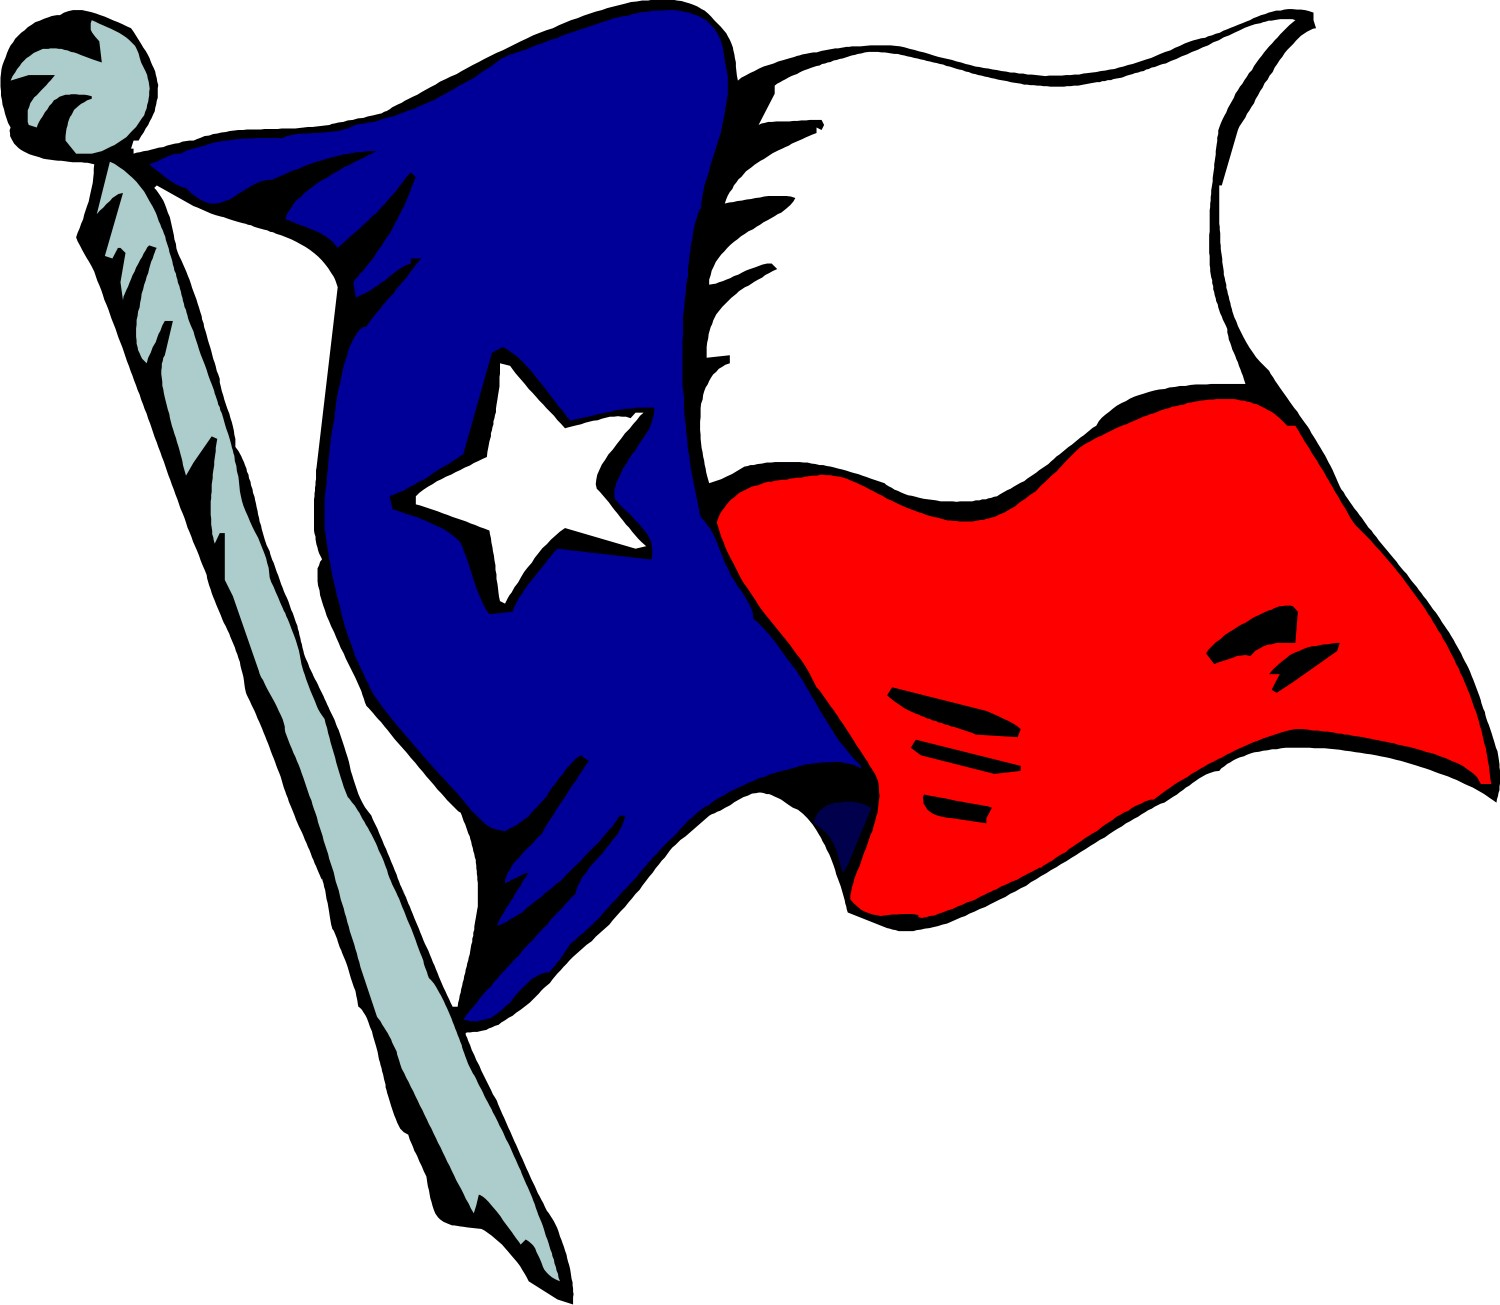 Texas clipart #4, Download drawings